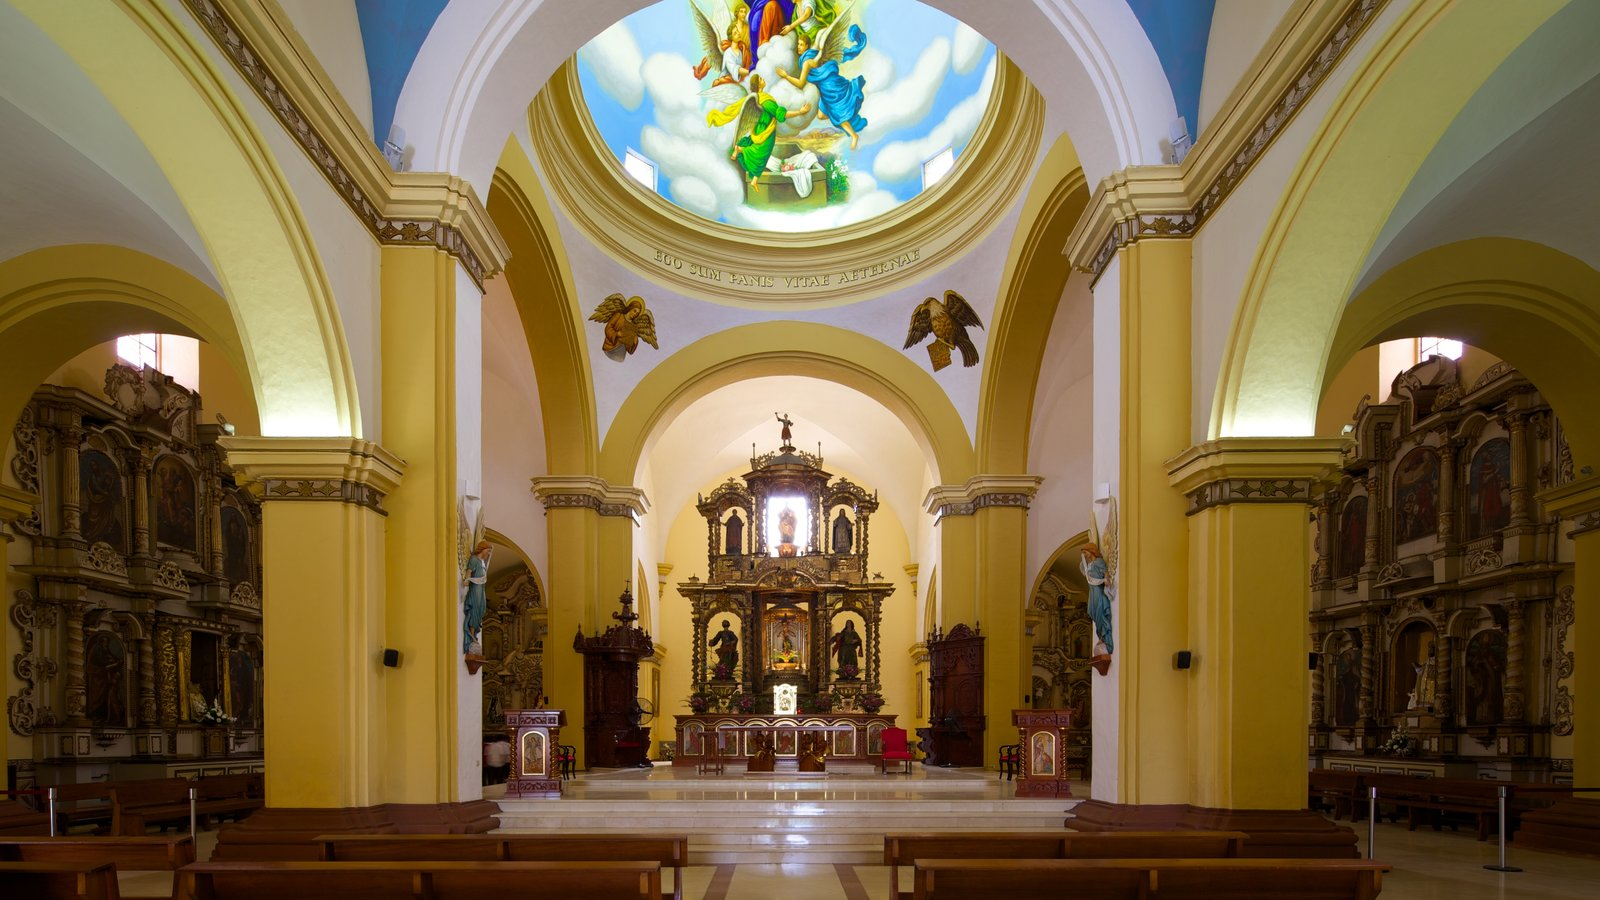 Trujillo Cathedral showing interior views and a church or cathedral